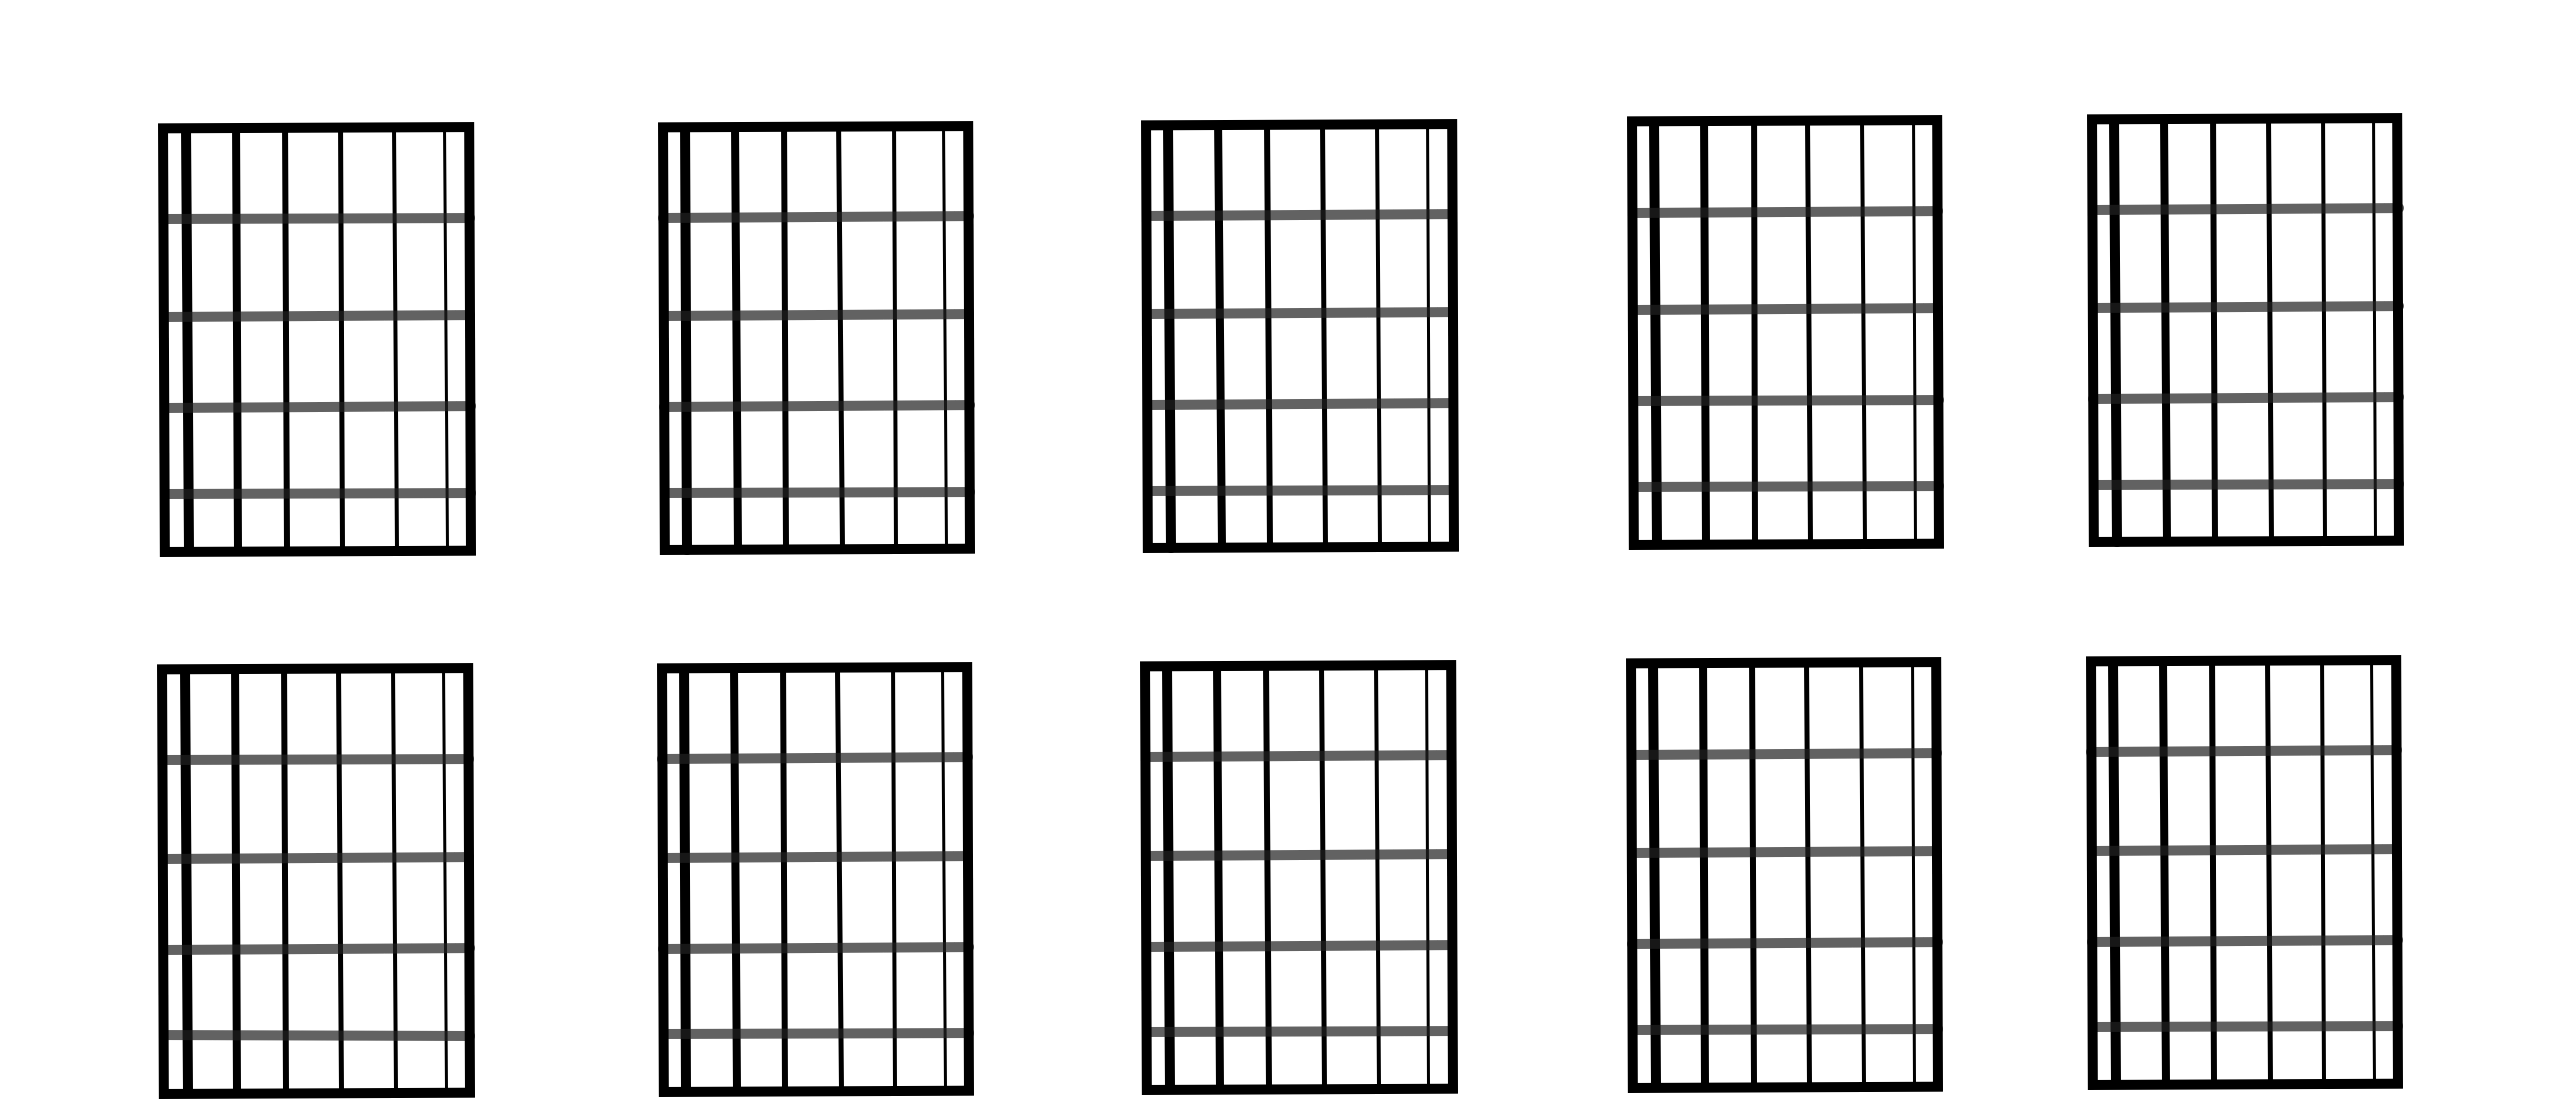 image regarding Printable Blank Guitar Chord Chart referred to as Printable Guitar Sheets Hub Guitar Hub Guitar